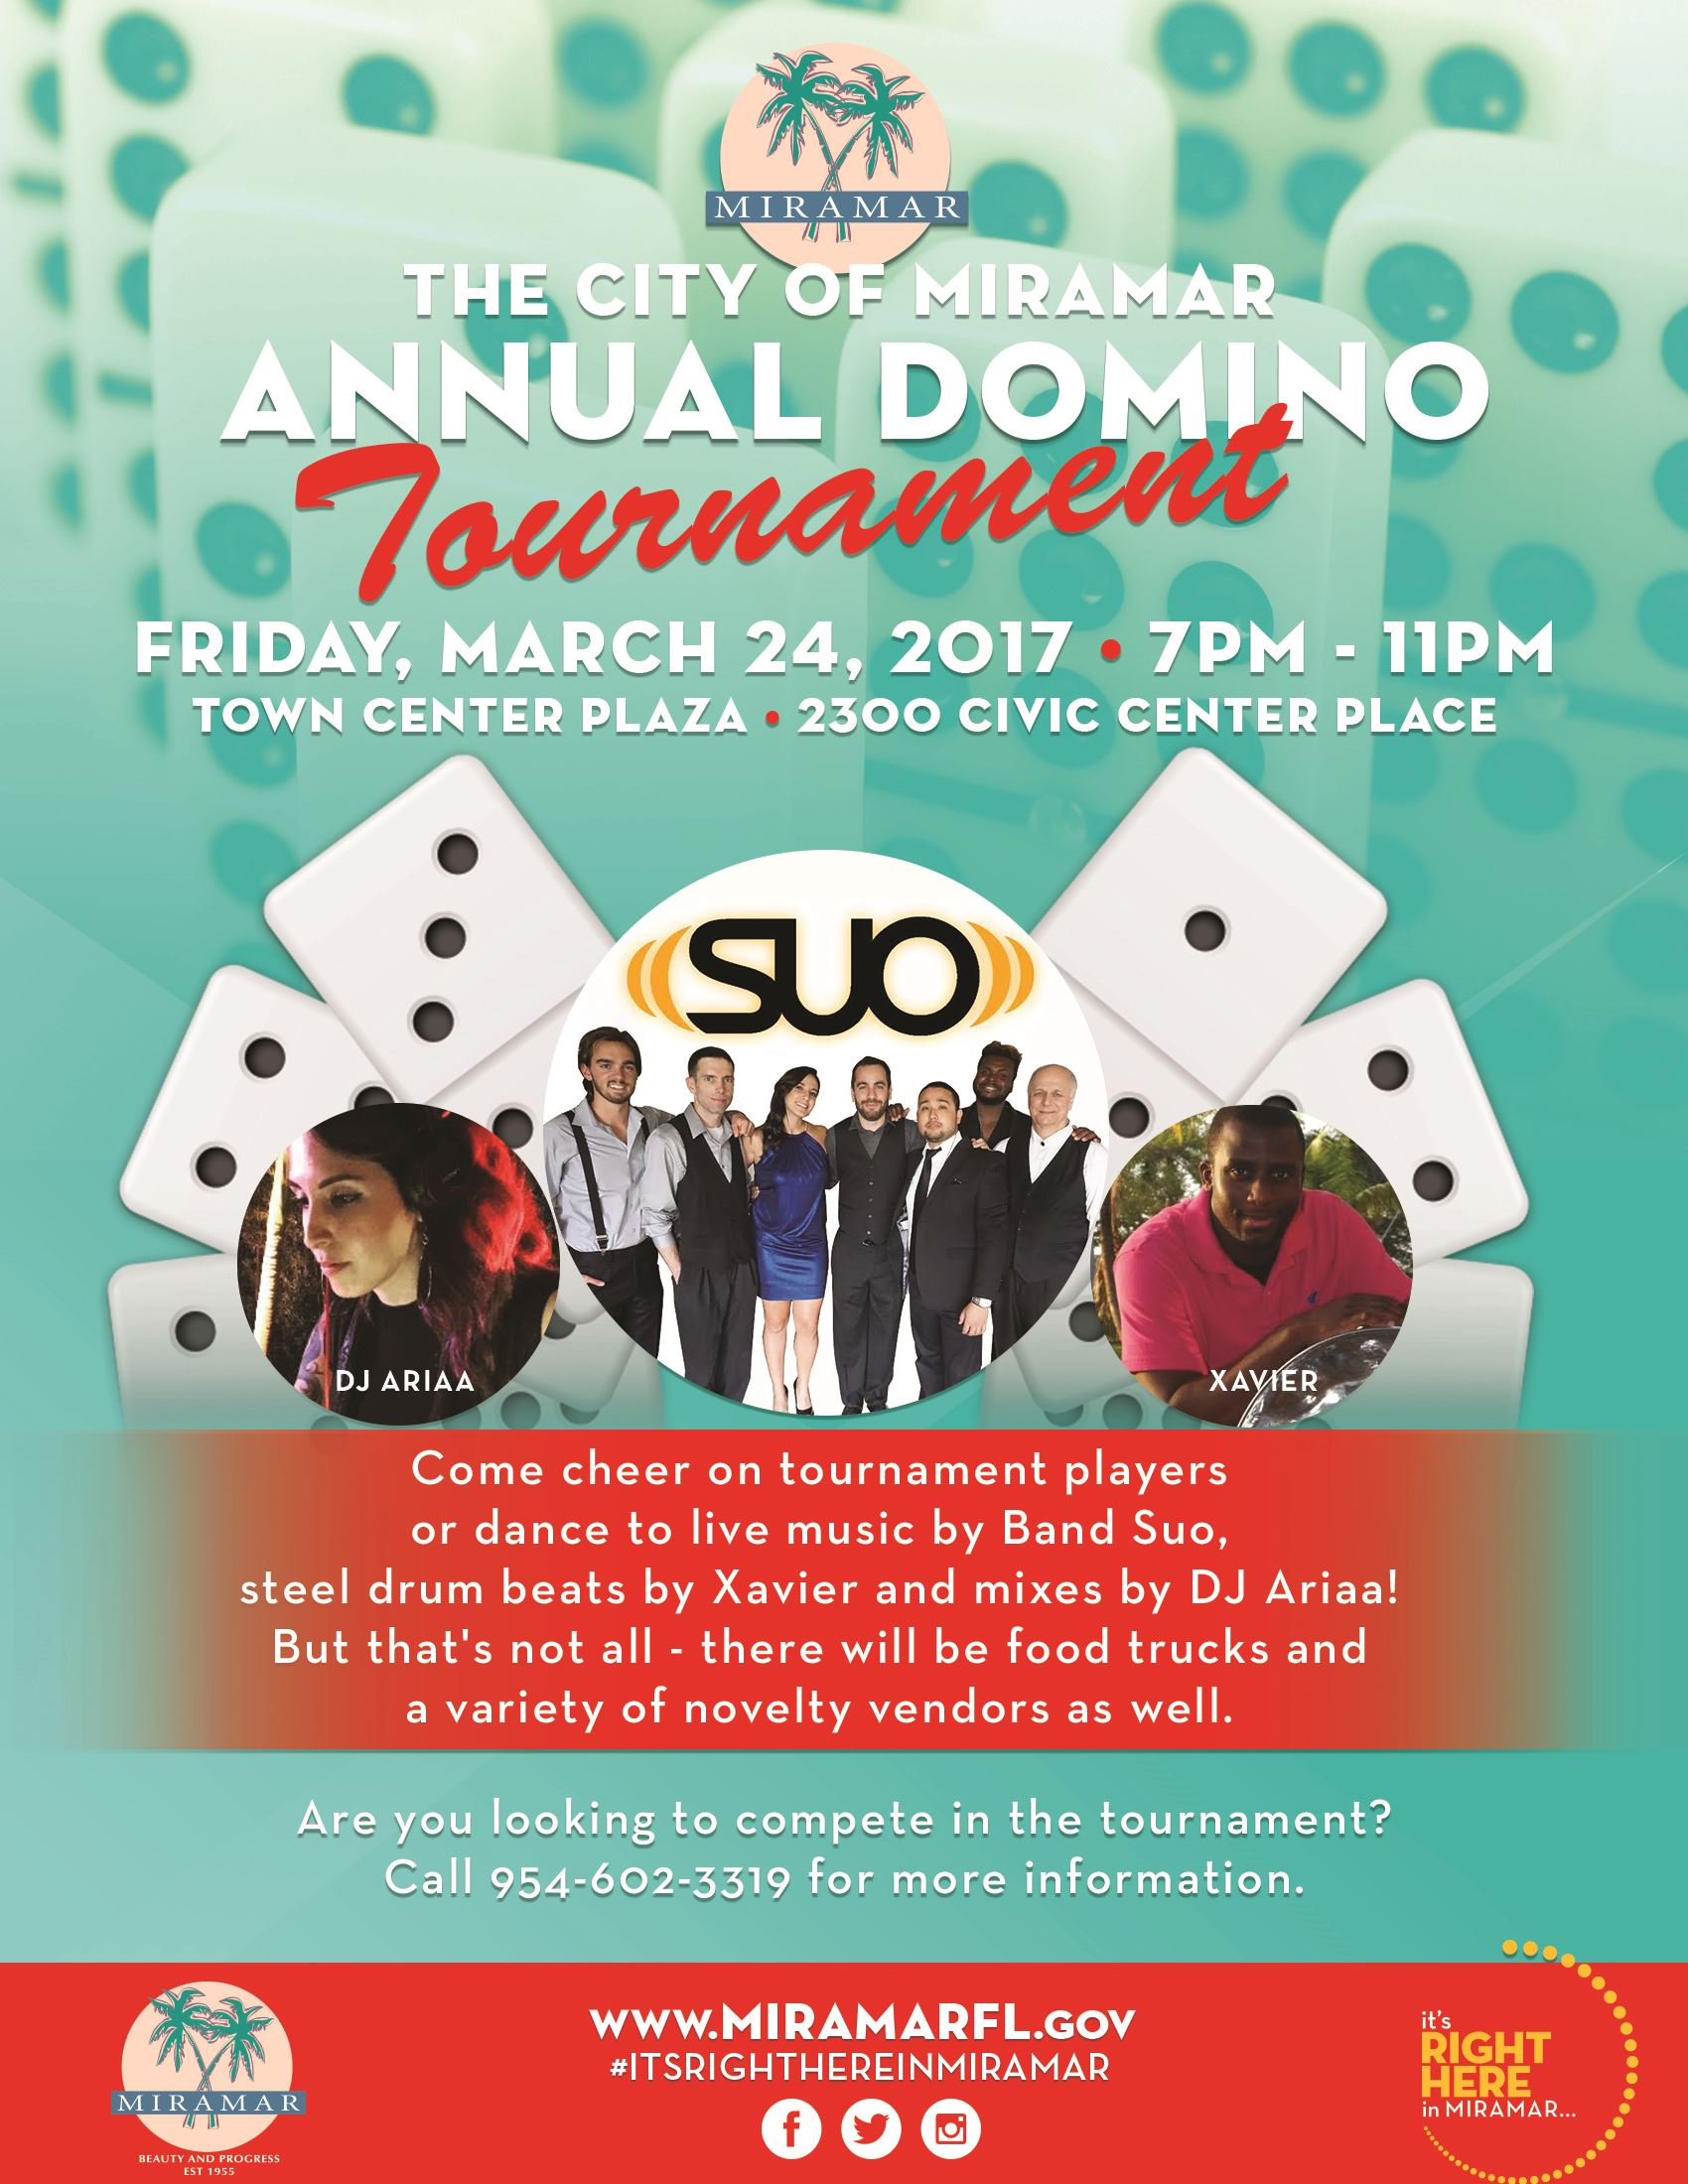 DominoTournament Flyer